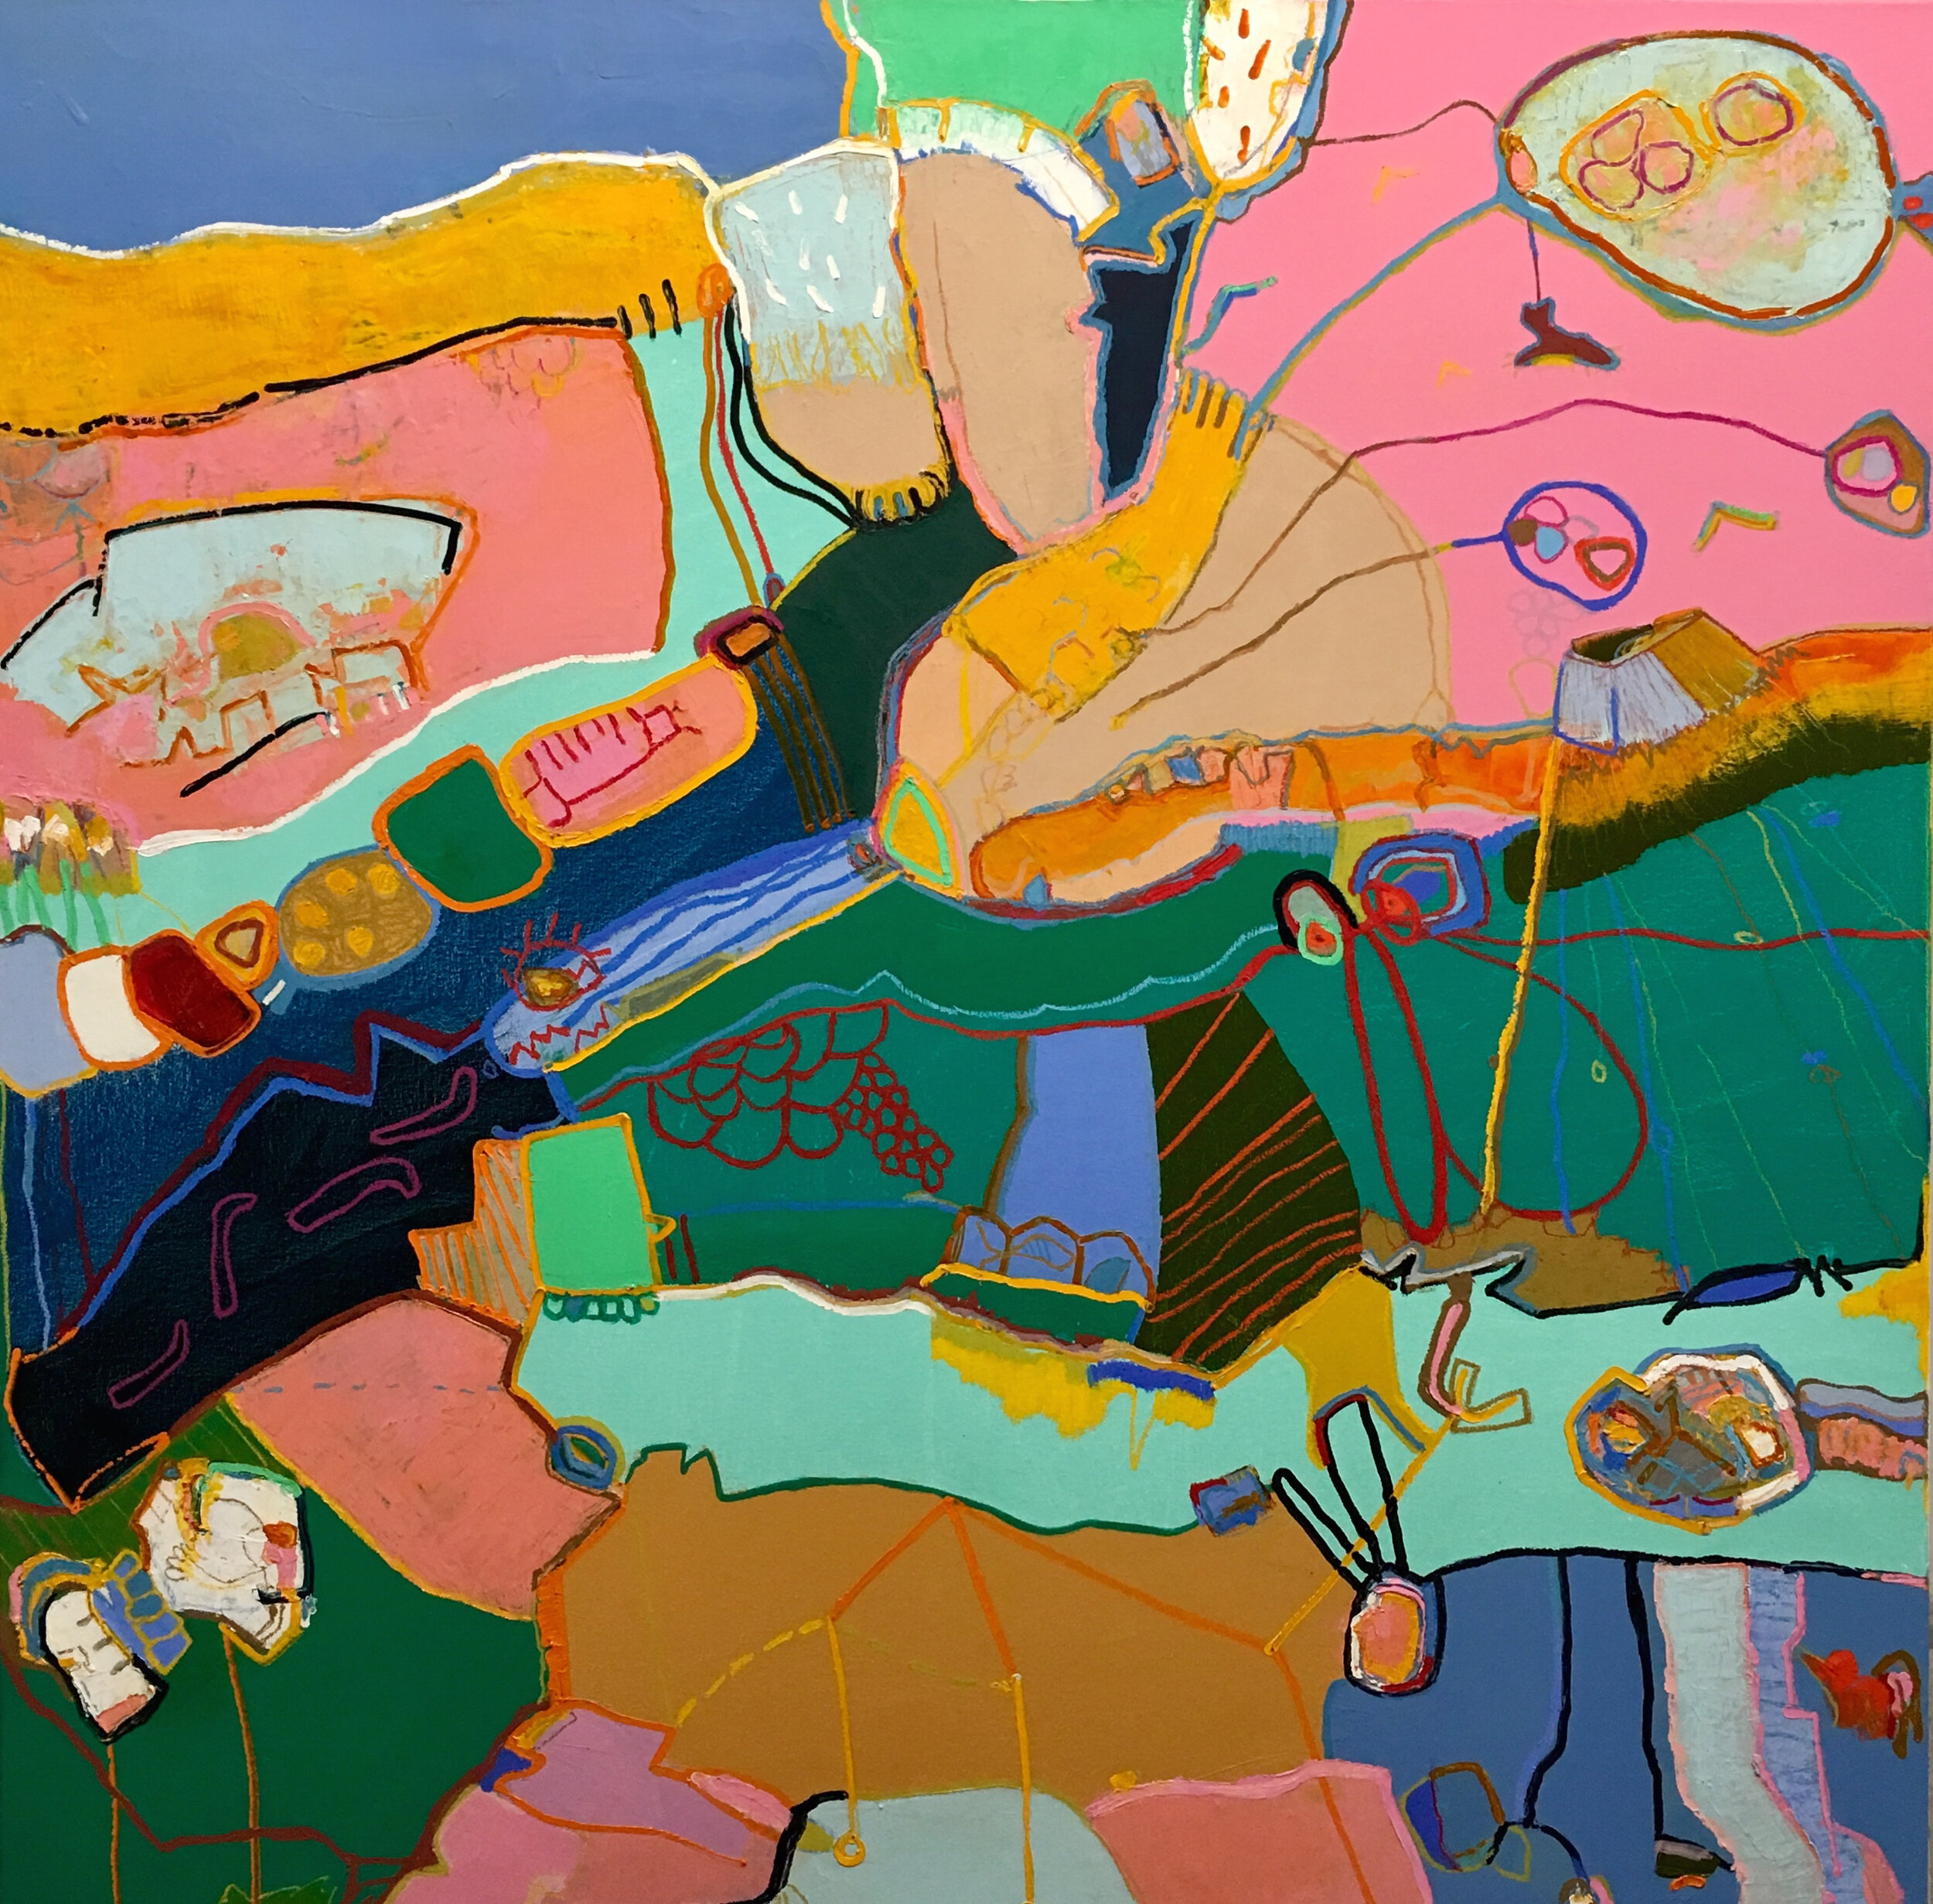 Abstract painting dominated with multi colors and lines, blue, green pink, yellow, brown.